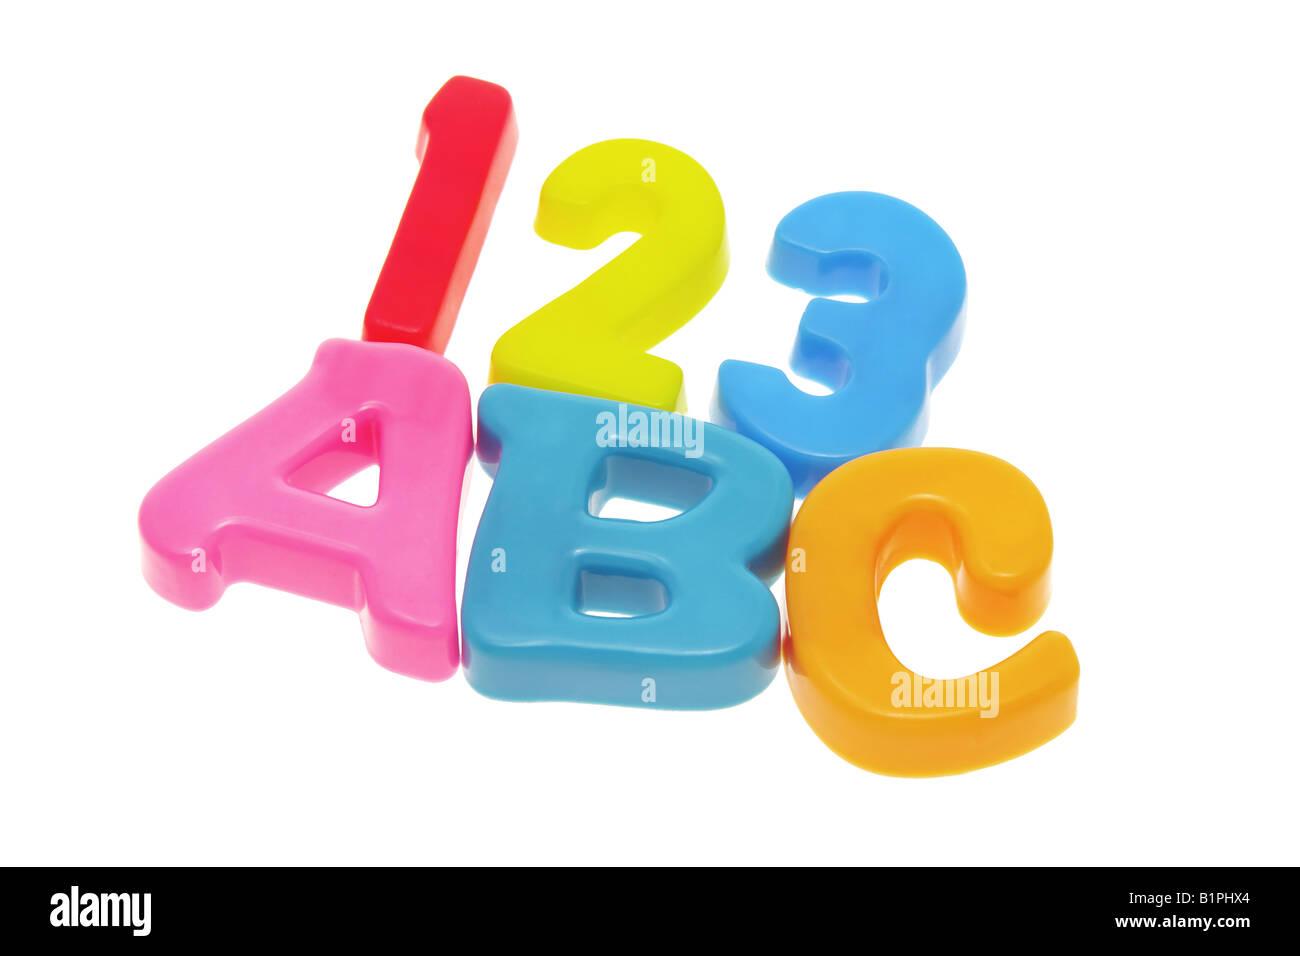 Alphabets ABC and numbers 123 on white background - Stock Image